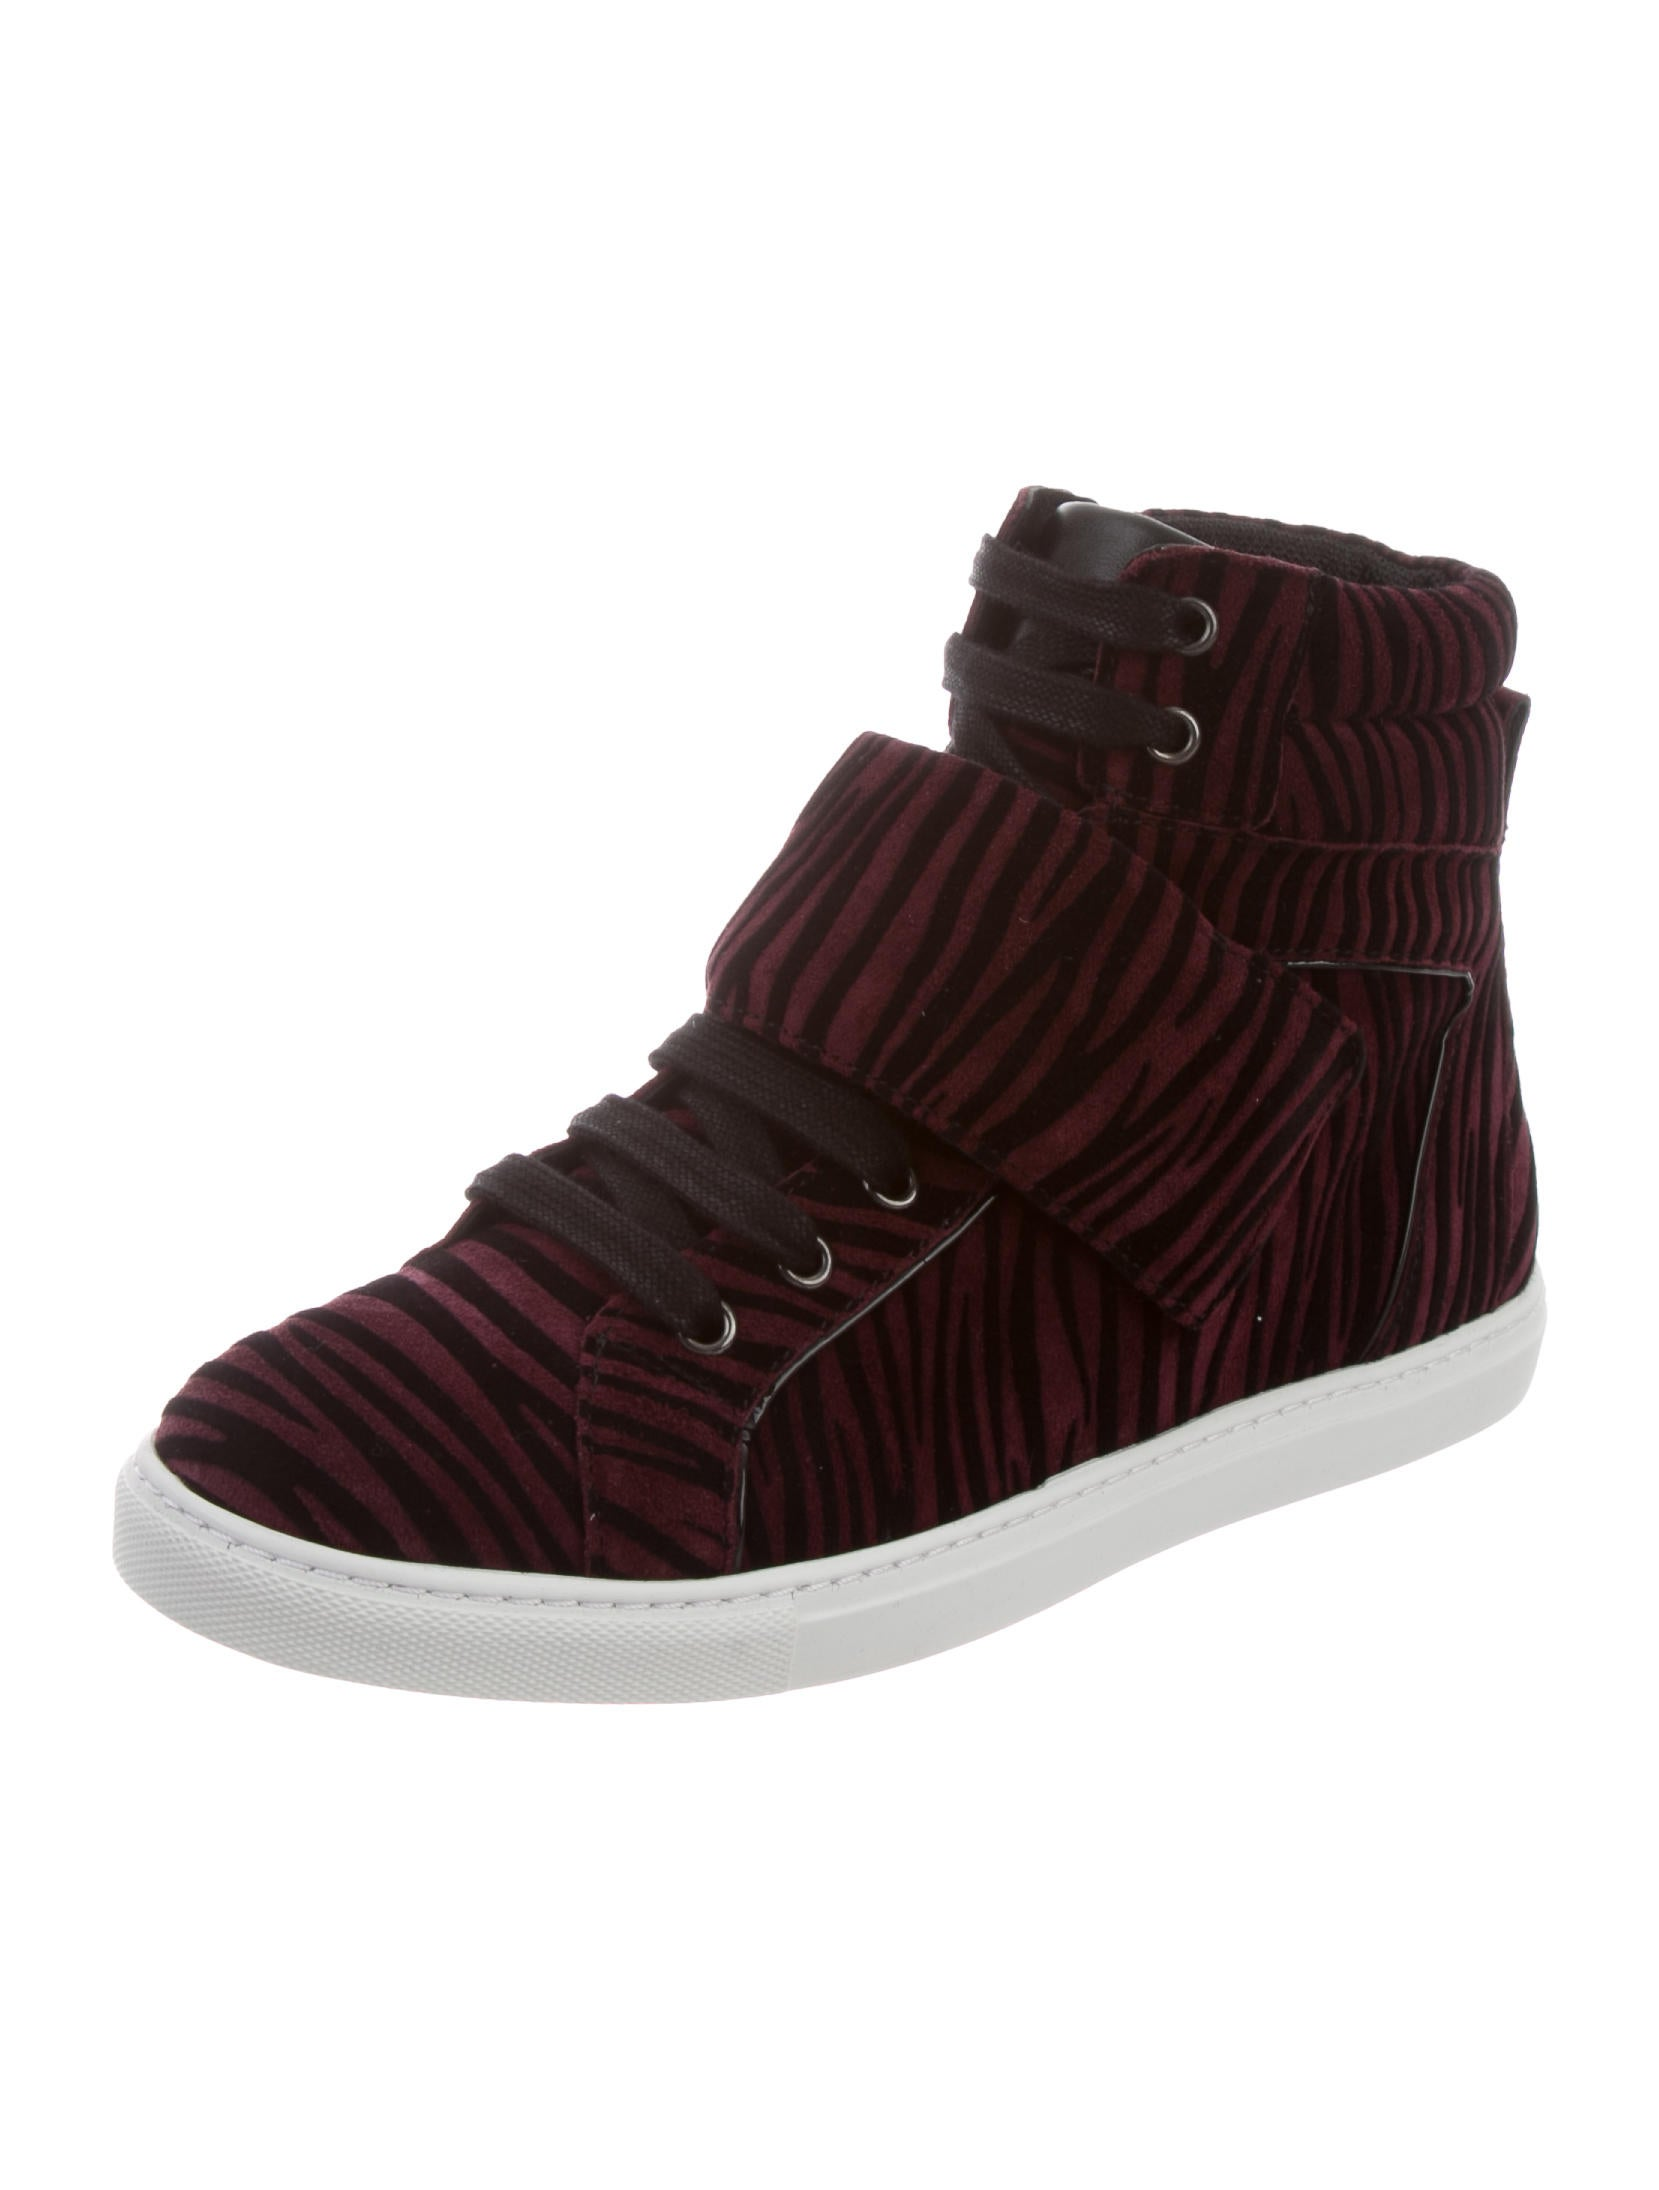 outlet visit Just Cavalli Suede High-Top Sneakers w/ Tags buy cheap low shipping fee cheap very cheap footaction cheap price clearance tumblr TzC4l4eTx